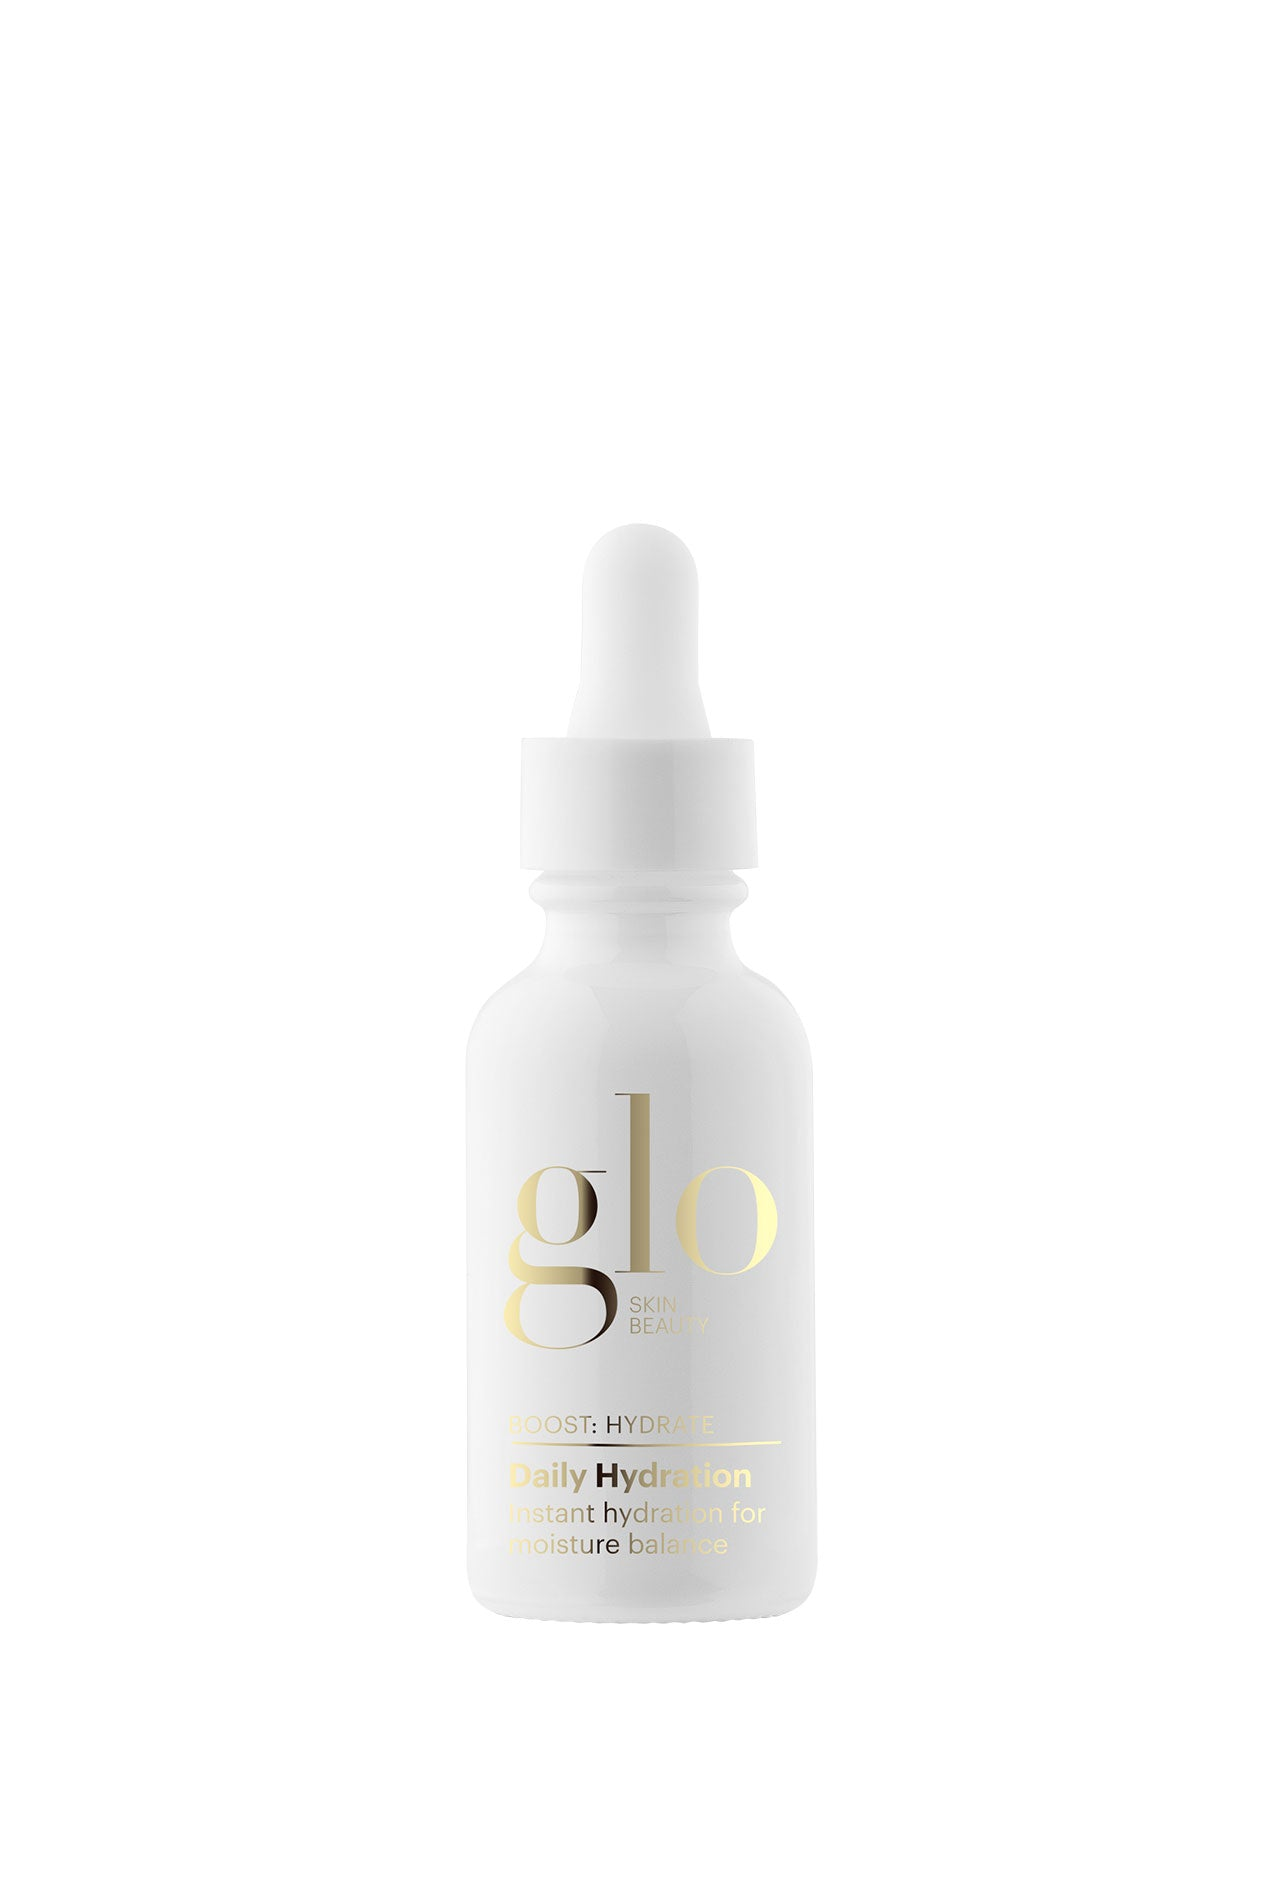 Daily hydration Serum